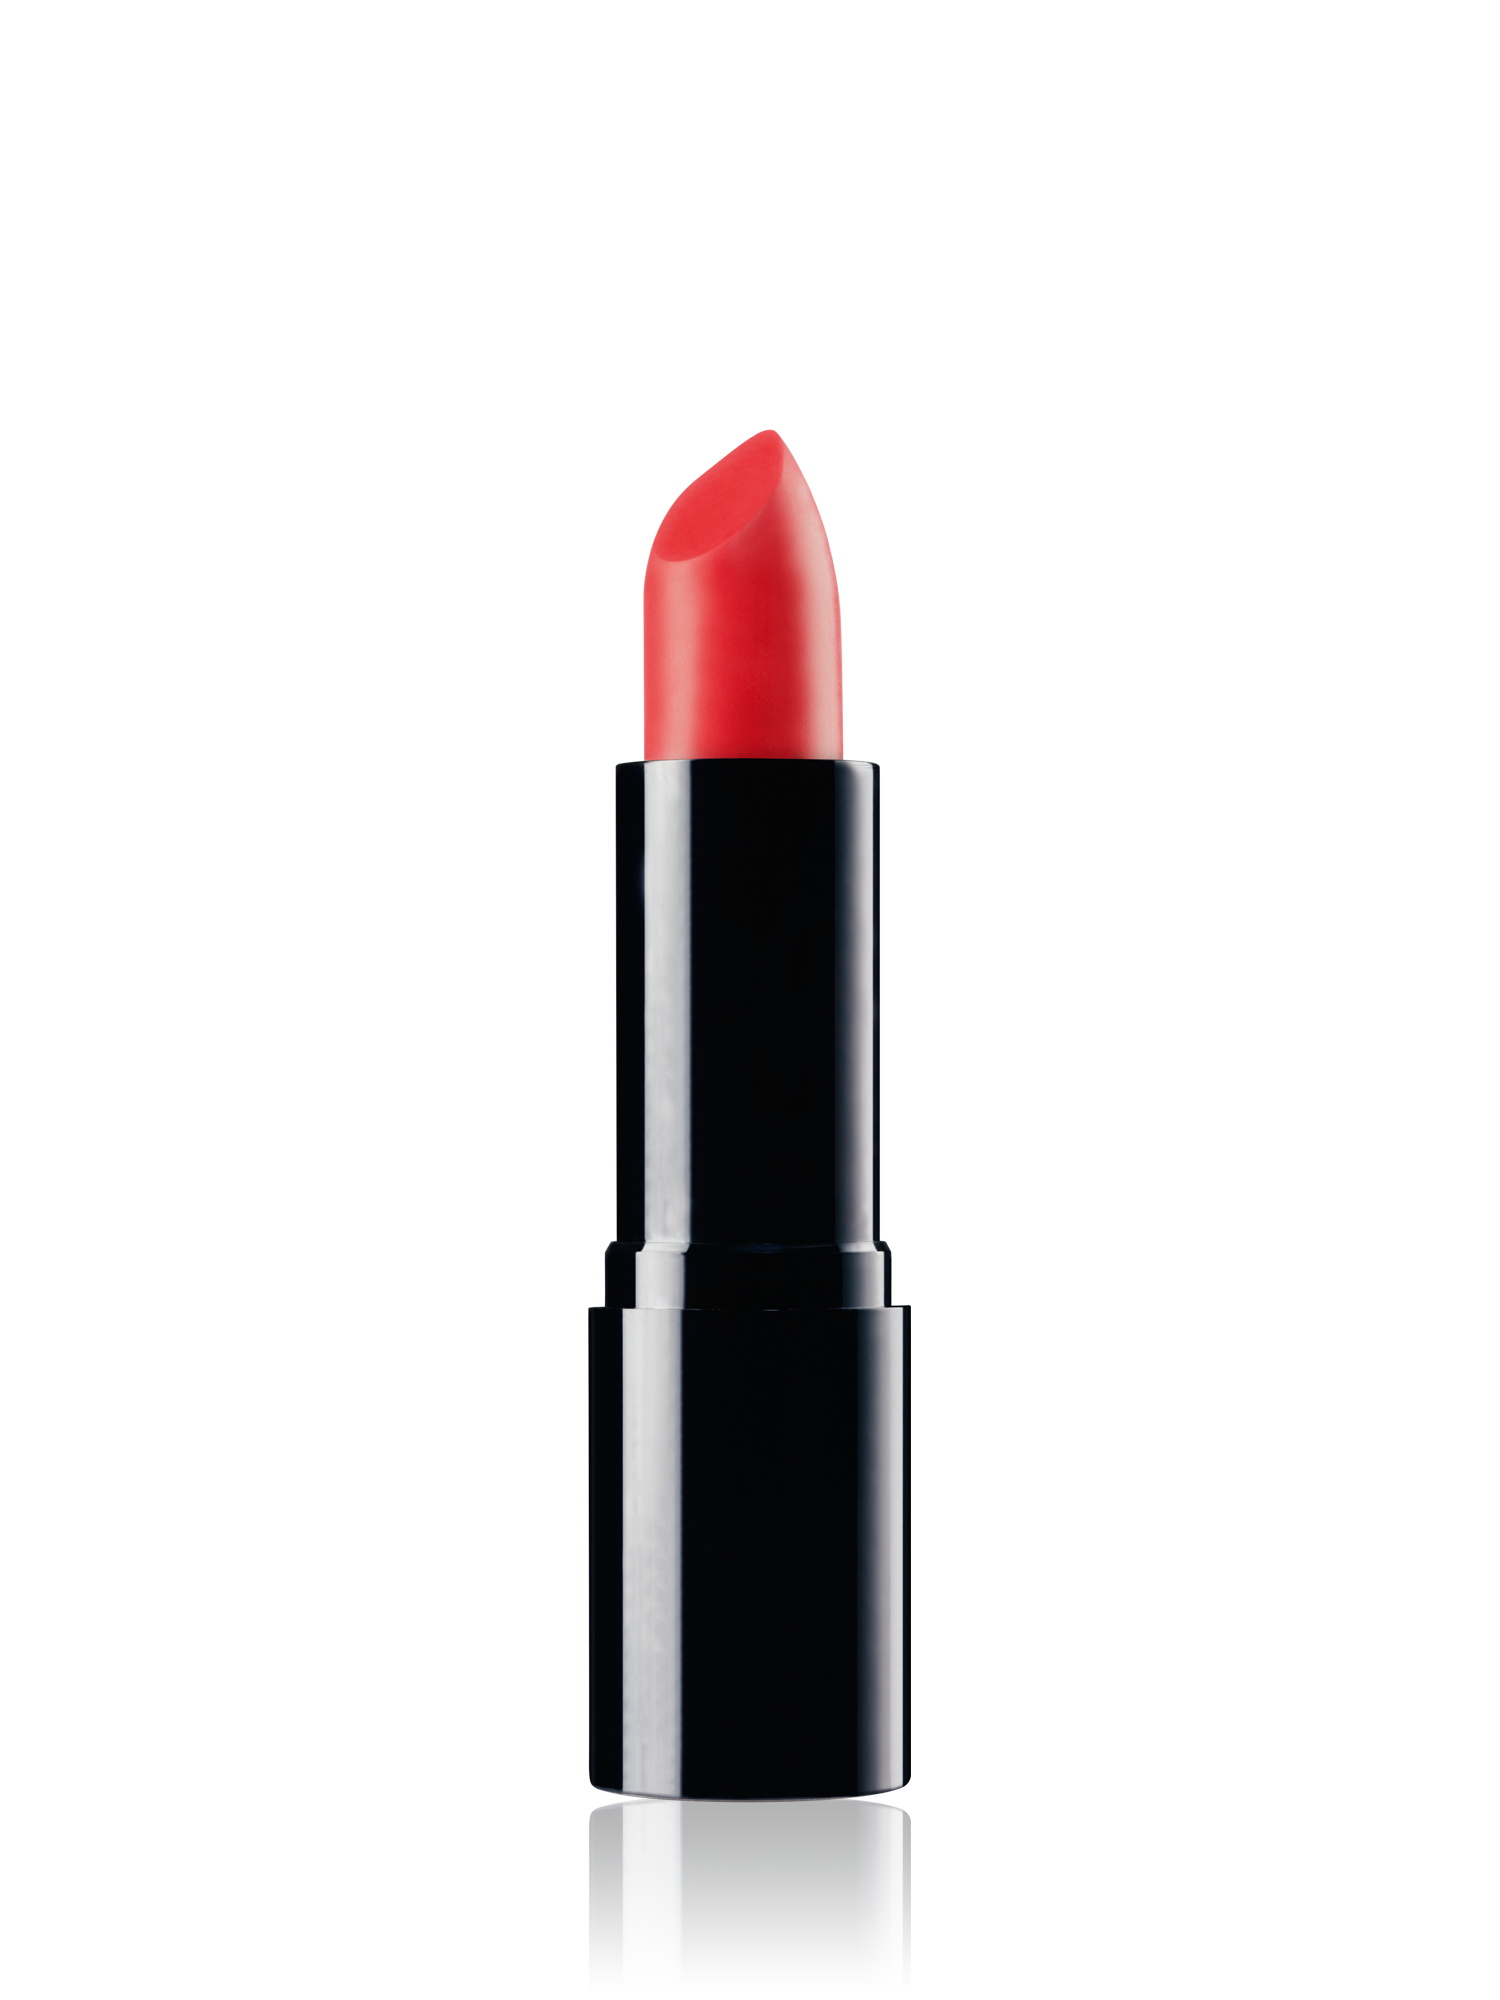 Lipstick Png Pic Lipstick Png Psd Template Free